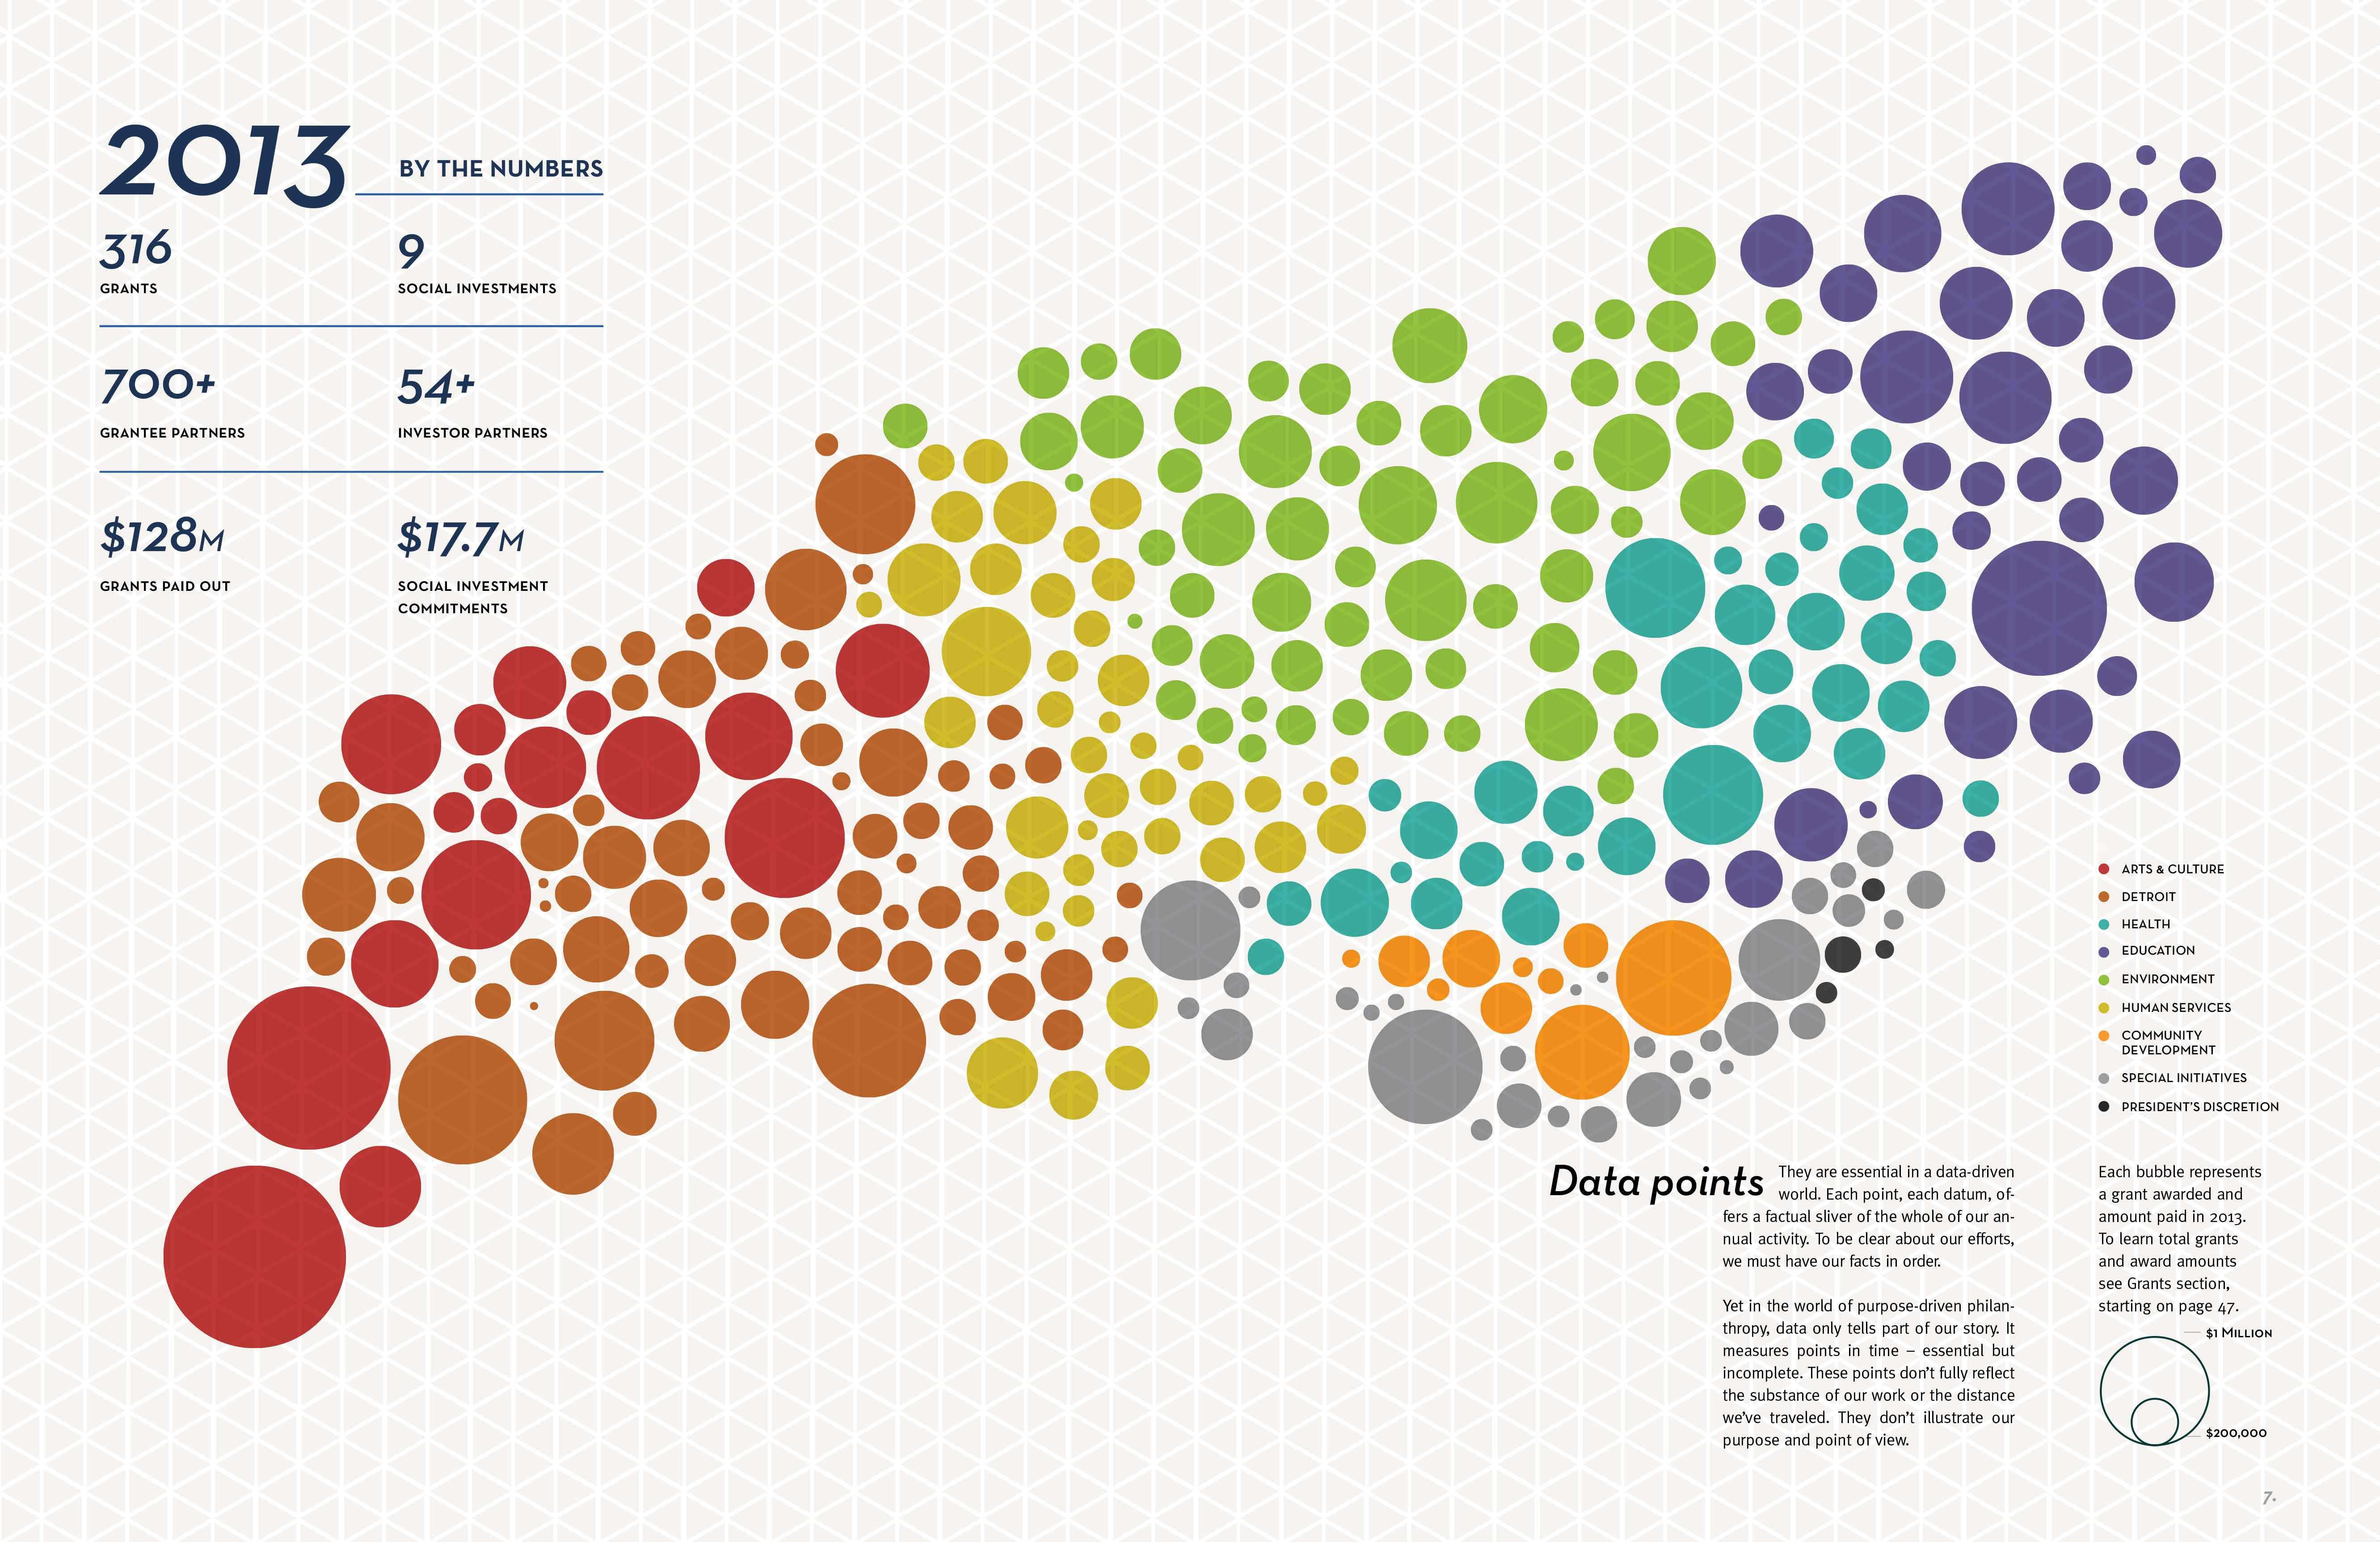 Kresge Foundation Annual Report 2013